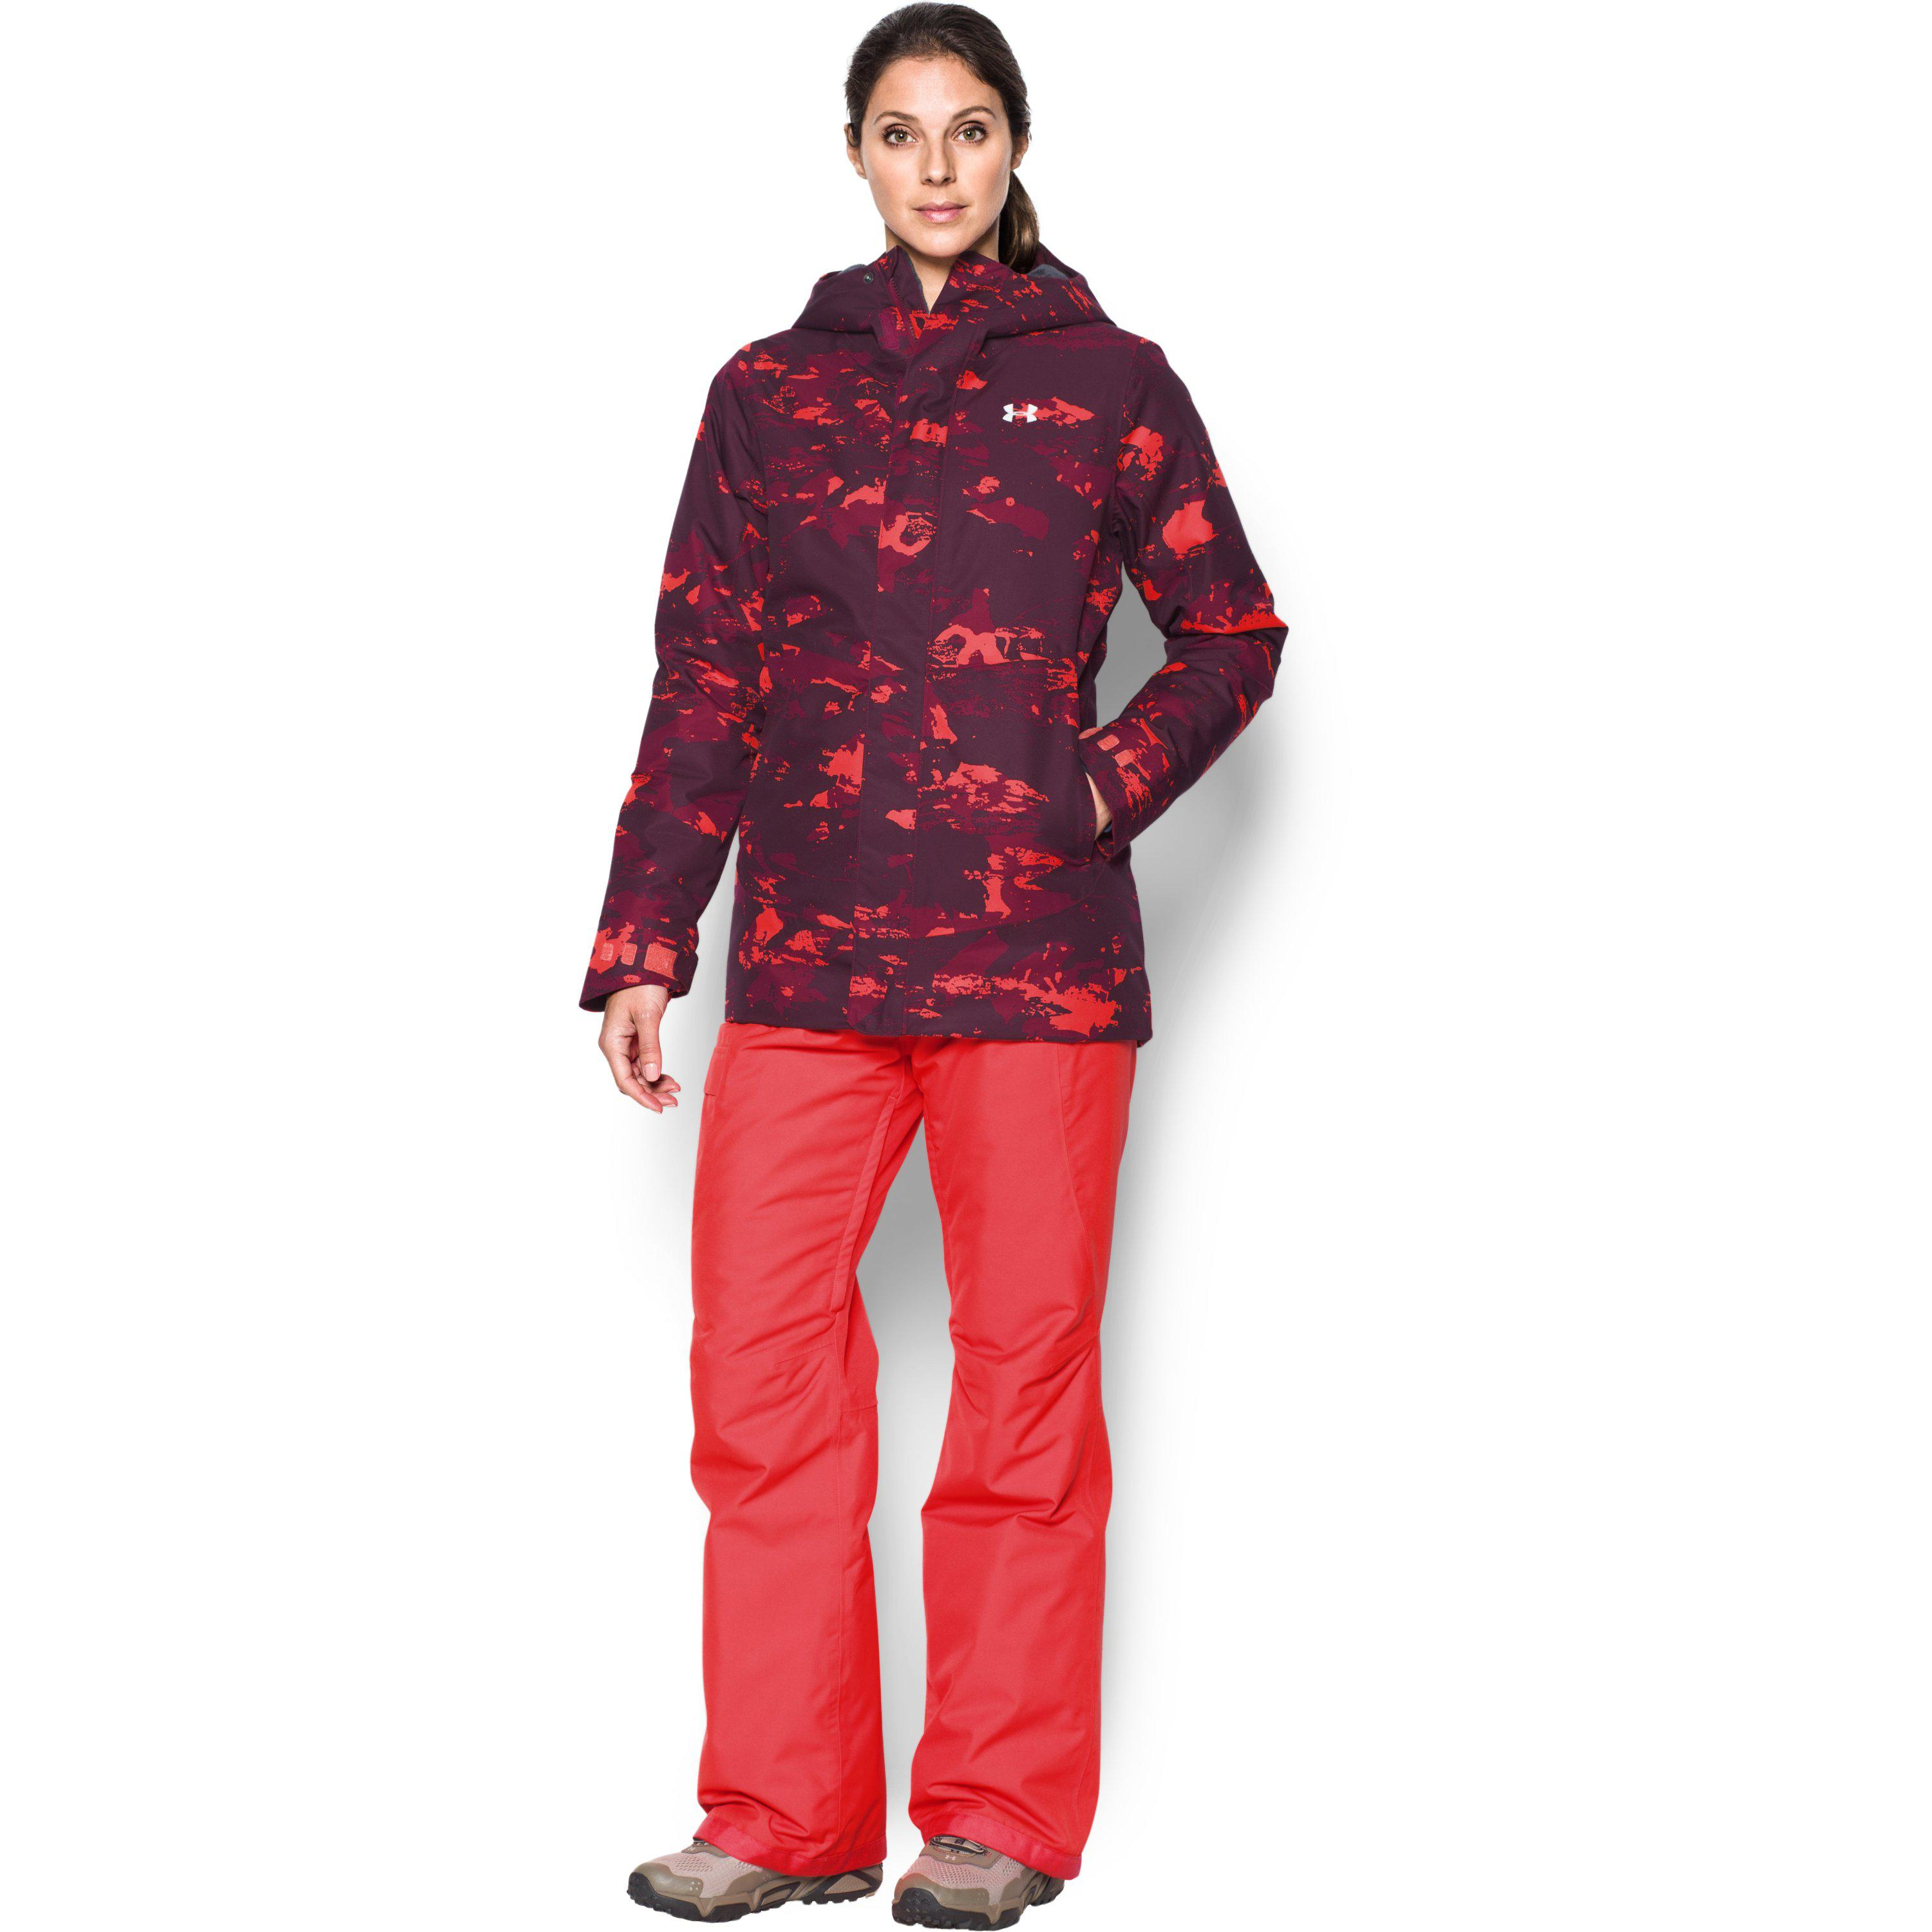 cf5fd5e8c Under Armour Women's Coldgear® Infrared Powerline Insulated Jacket ...